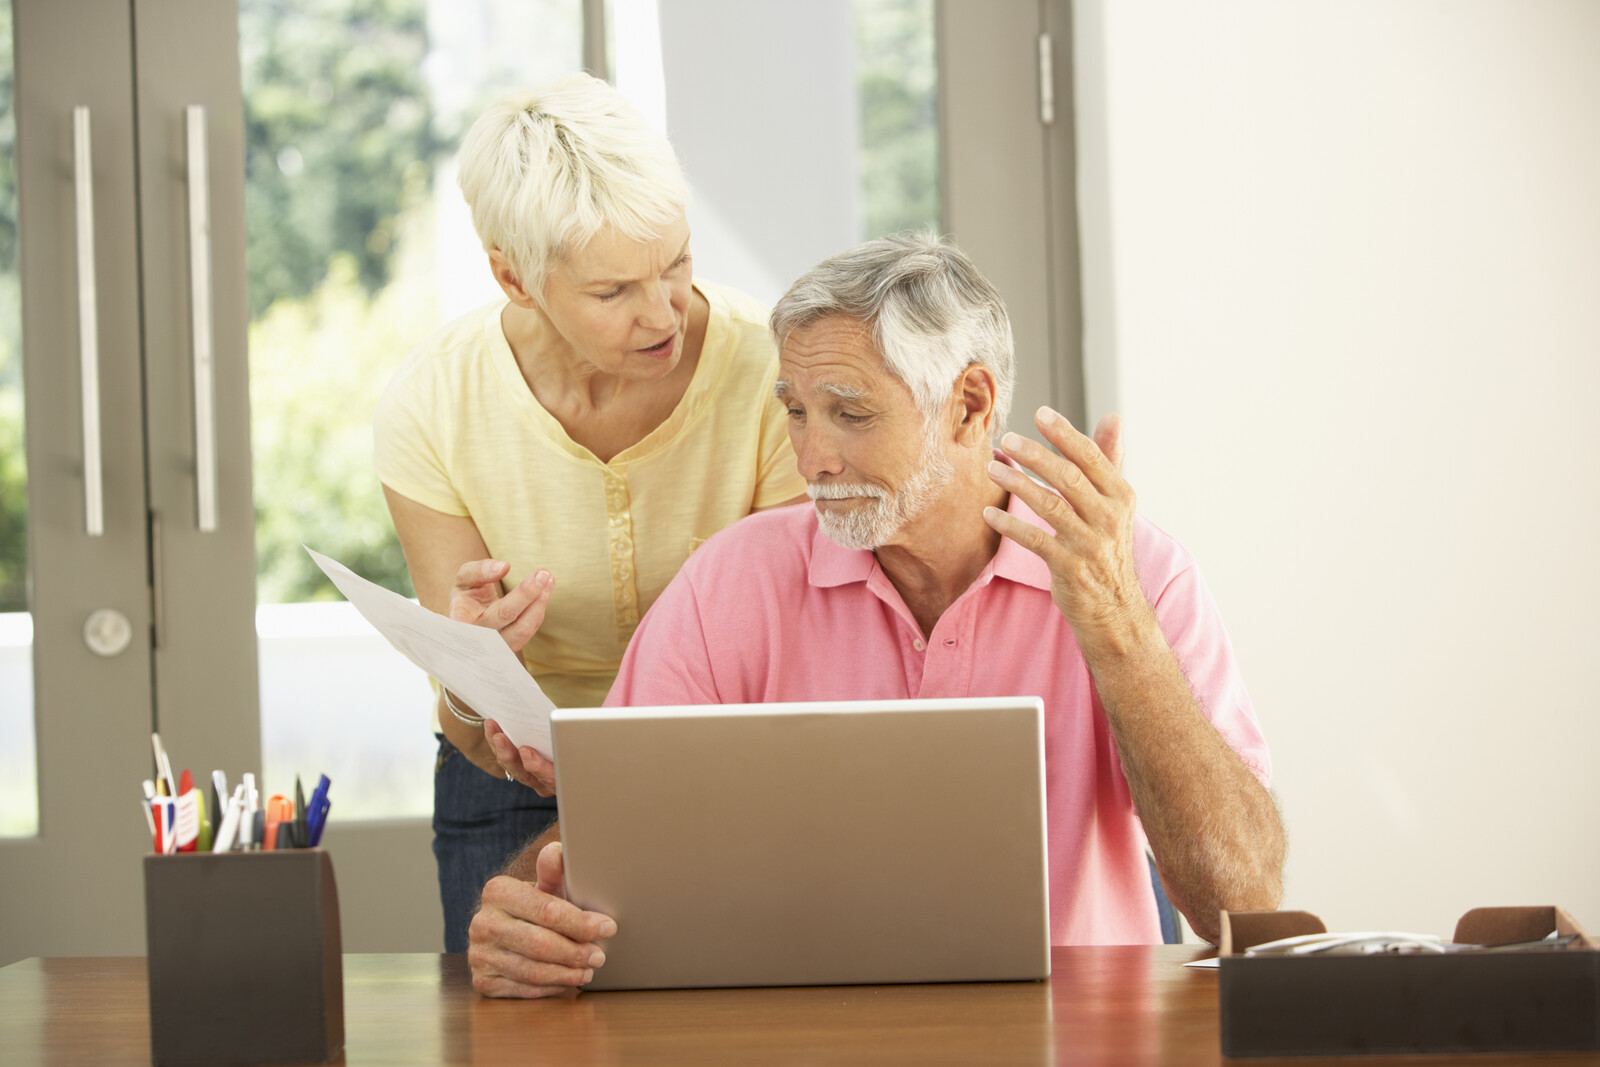 The photo represents a worried senior couple, the man is sitting in front of a laptop and his wife is standing next to him